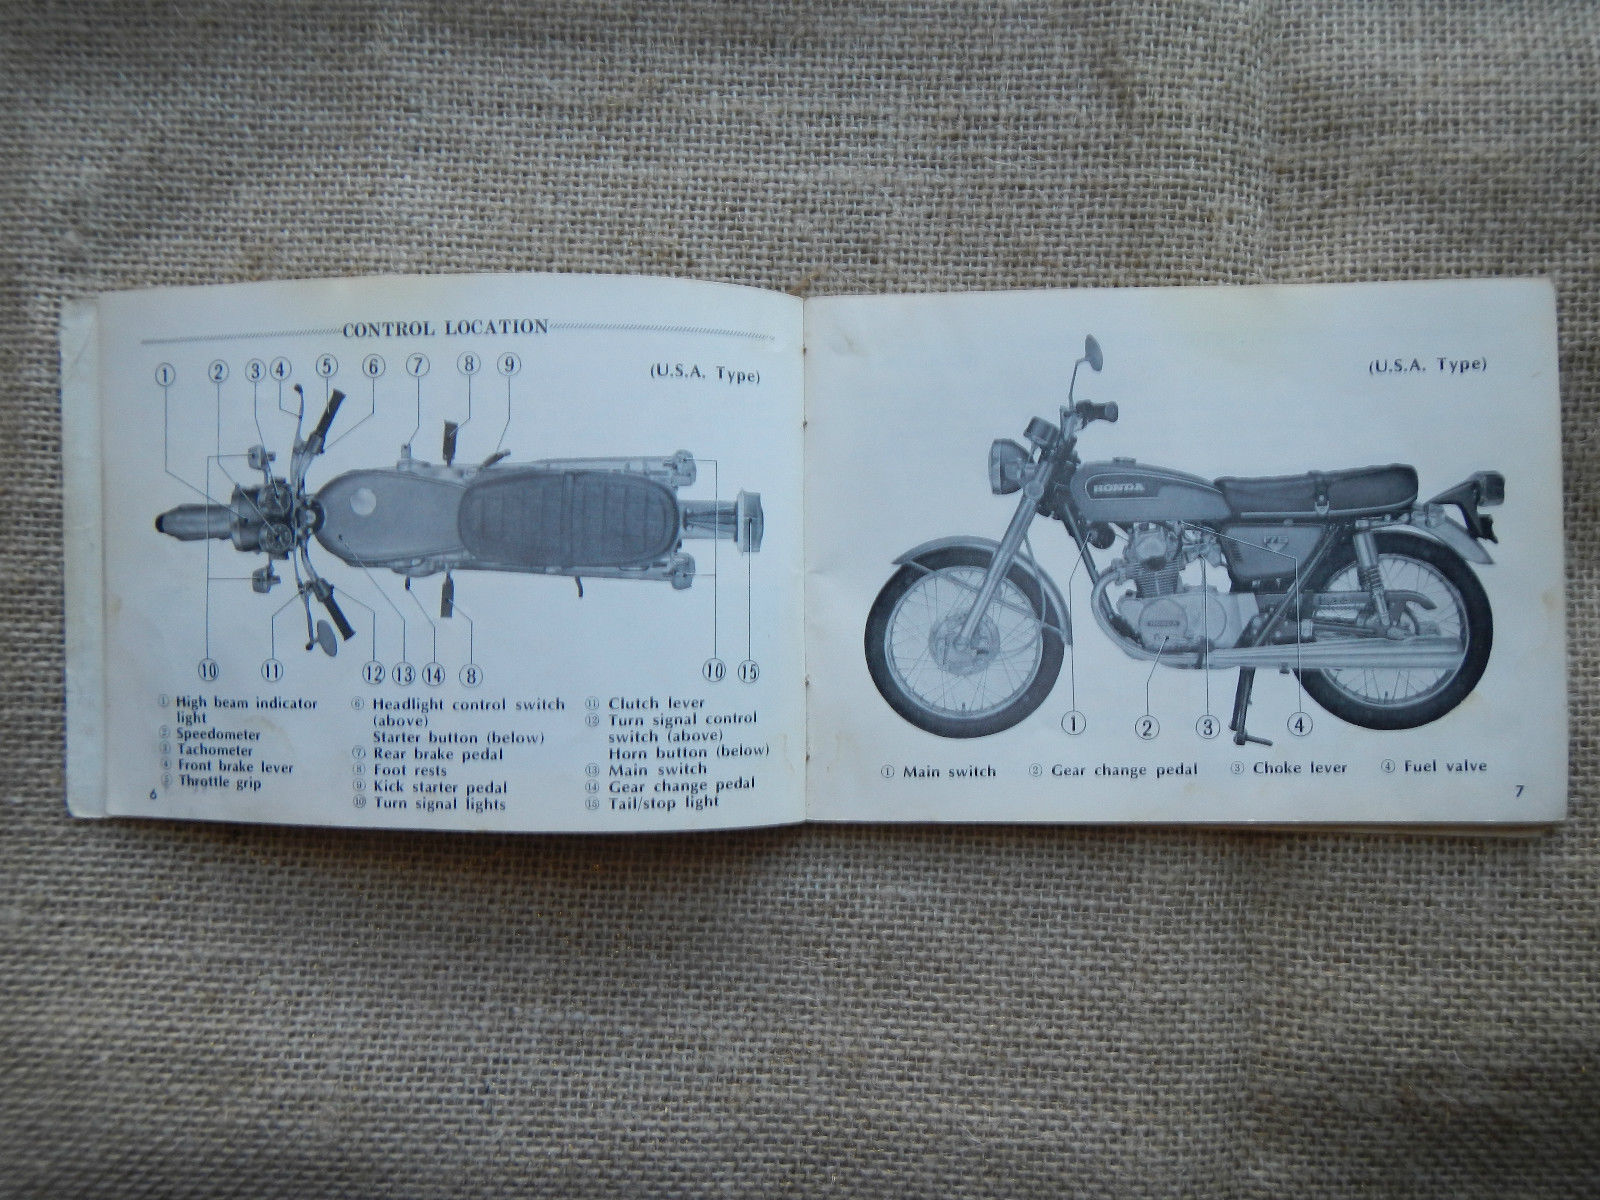 72 Cb175 Wiring Diagram Diagrams Schematics Honda Cl360 1972 Cb 175 K6 K 6 Owner And 50 Similar Items Owners Manual